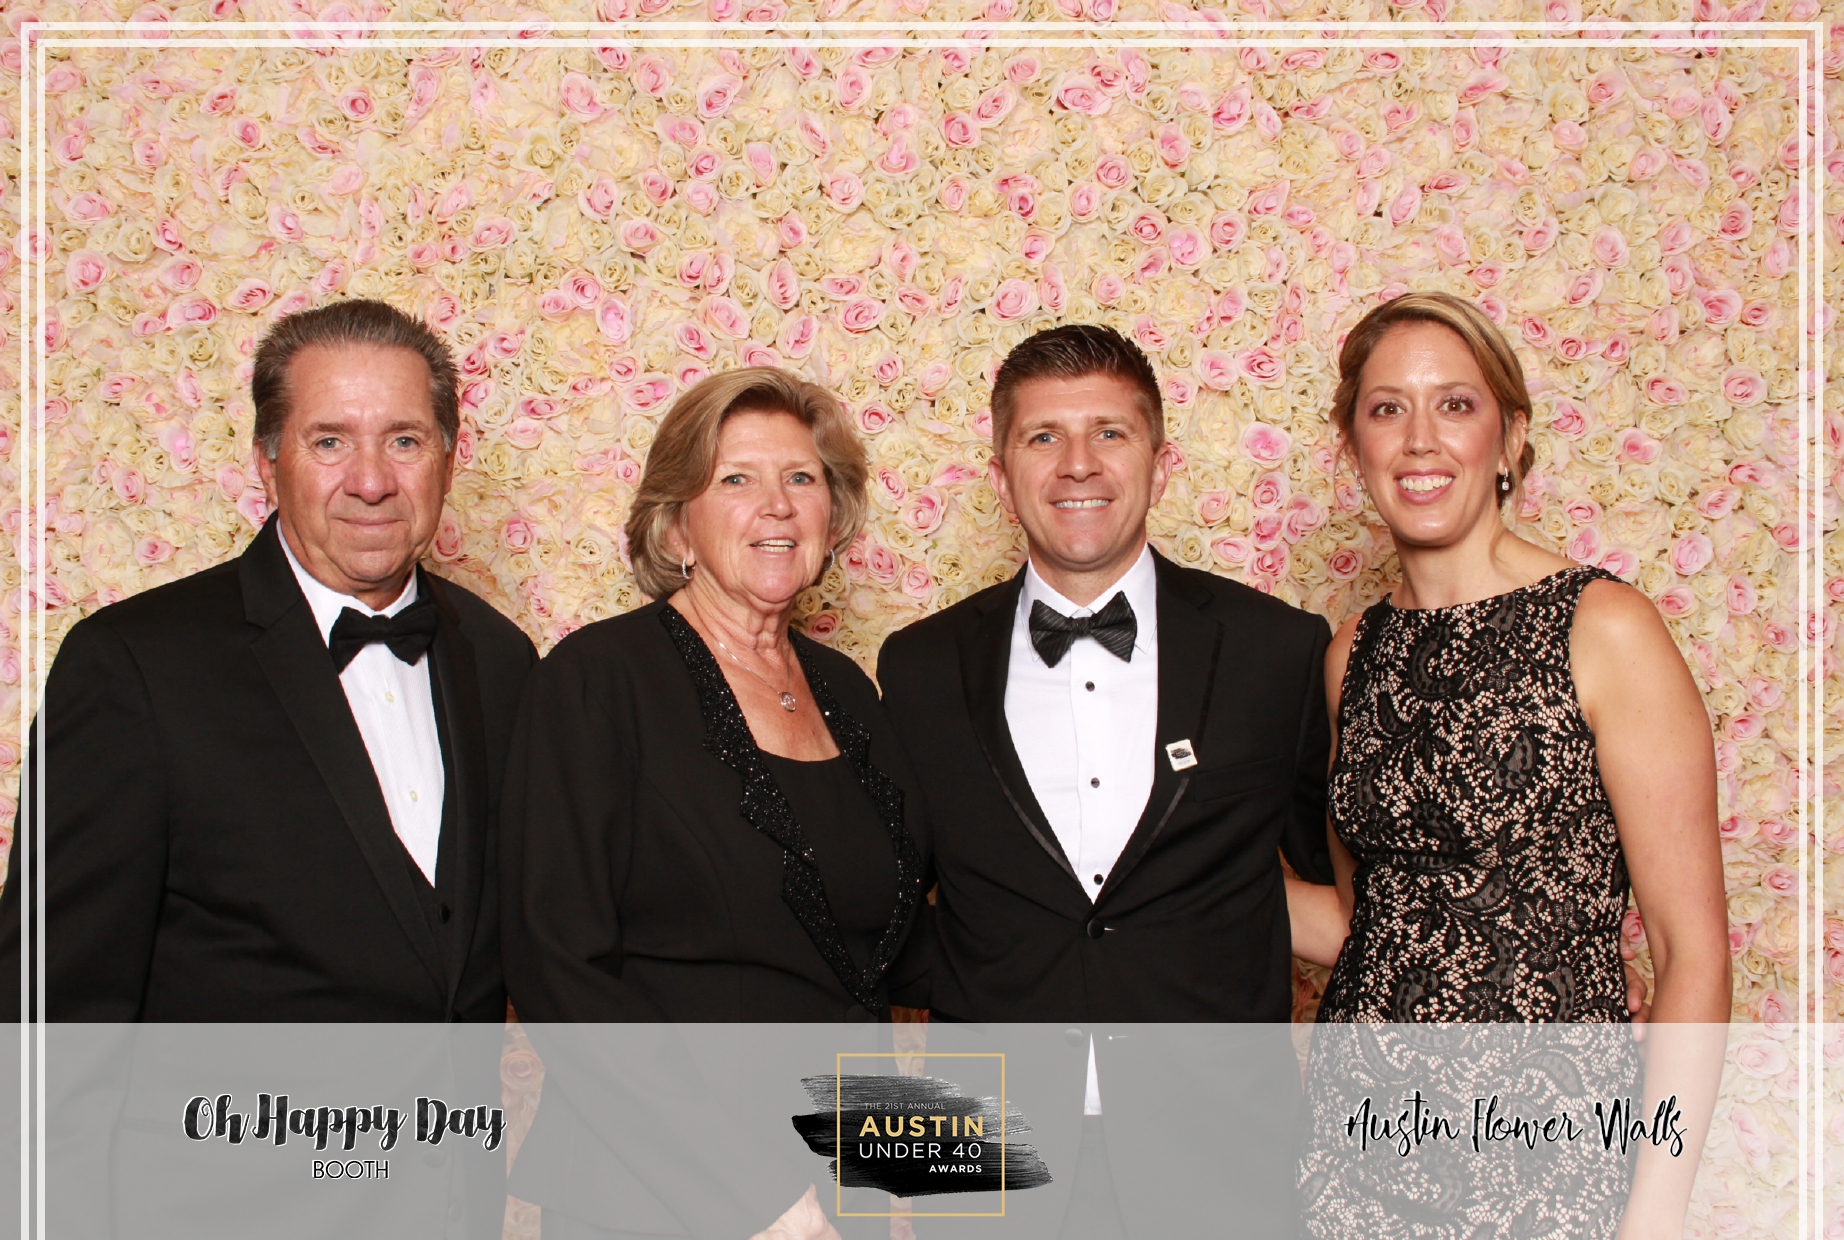 Oh Happy Day Booth - Austin Under 40-103.jpg